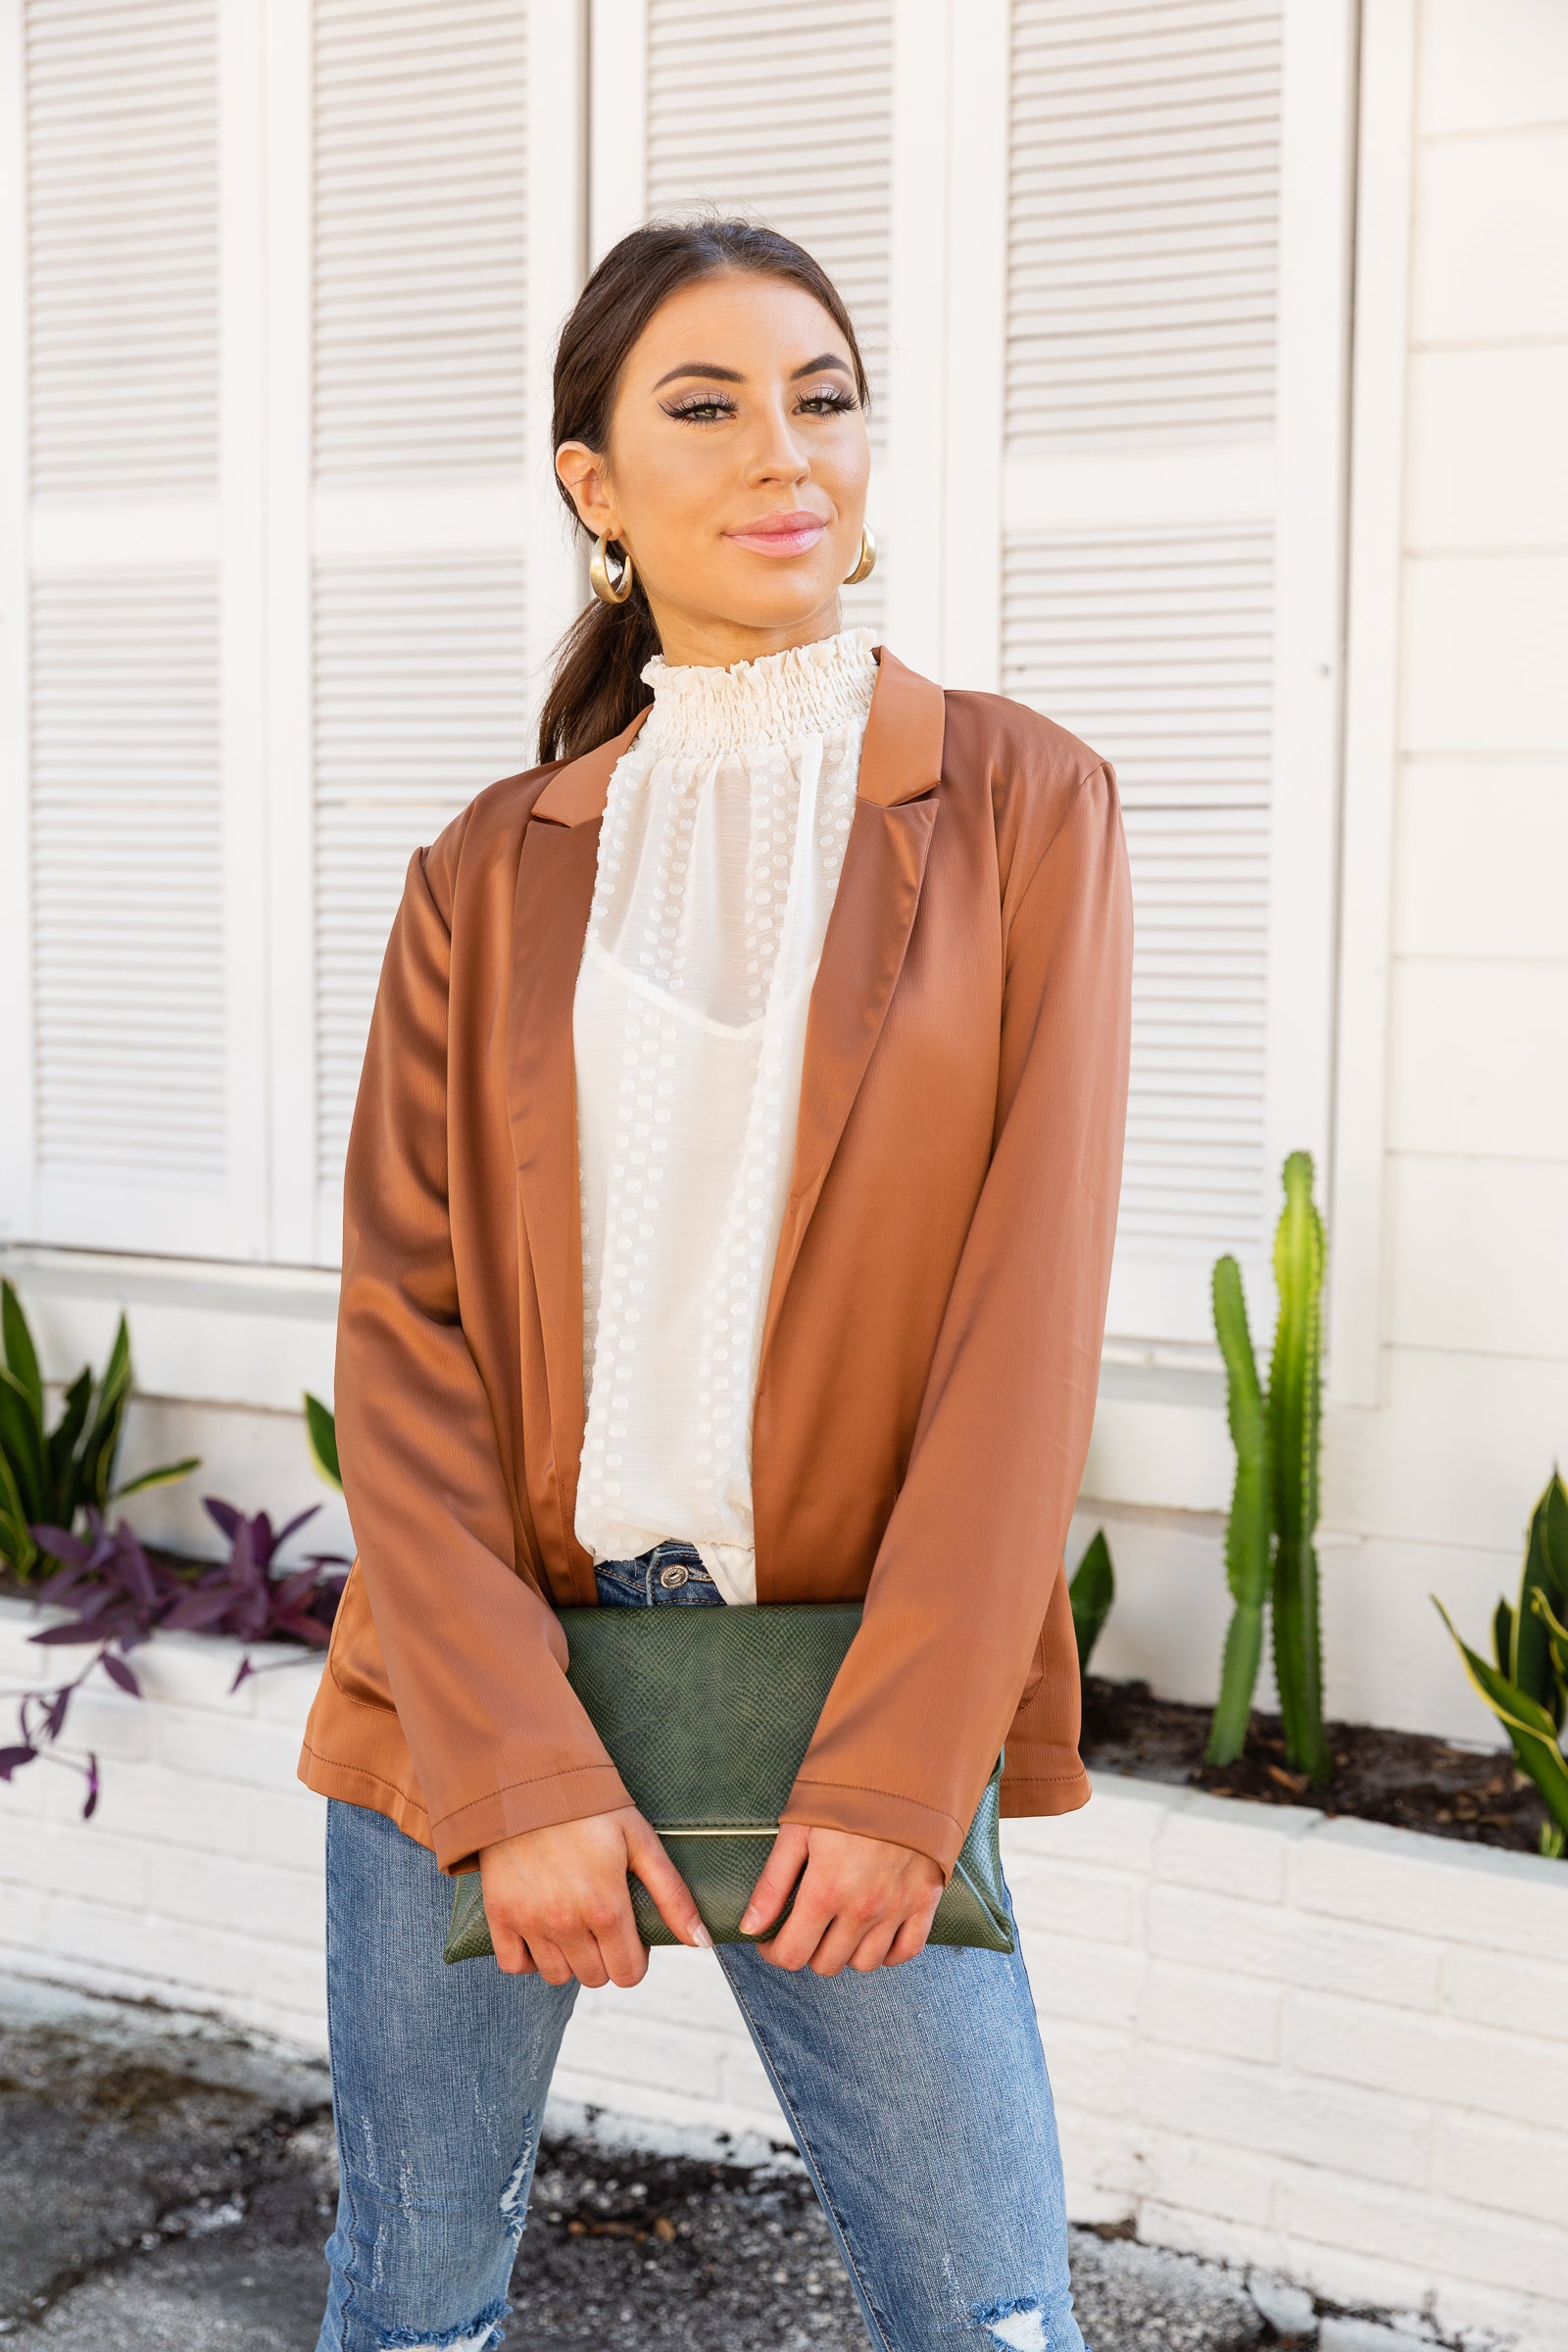 This lightweight and satiny blazer has long sleeves that attach to a collared neckline on an open-front and oversized bodice with front pockets,